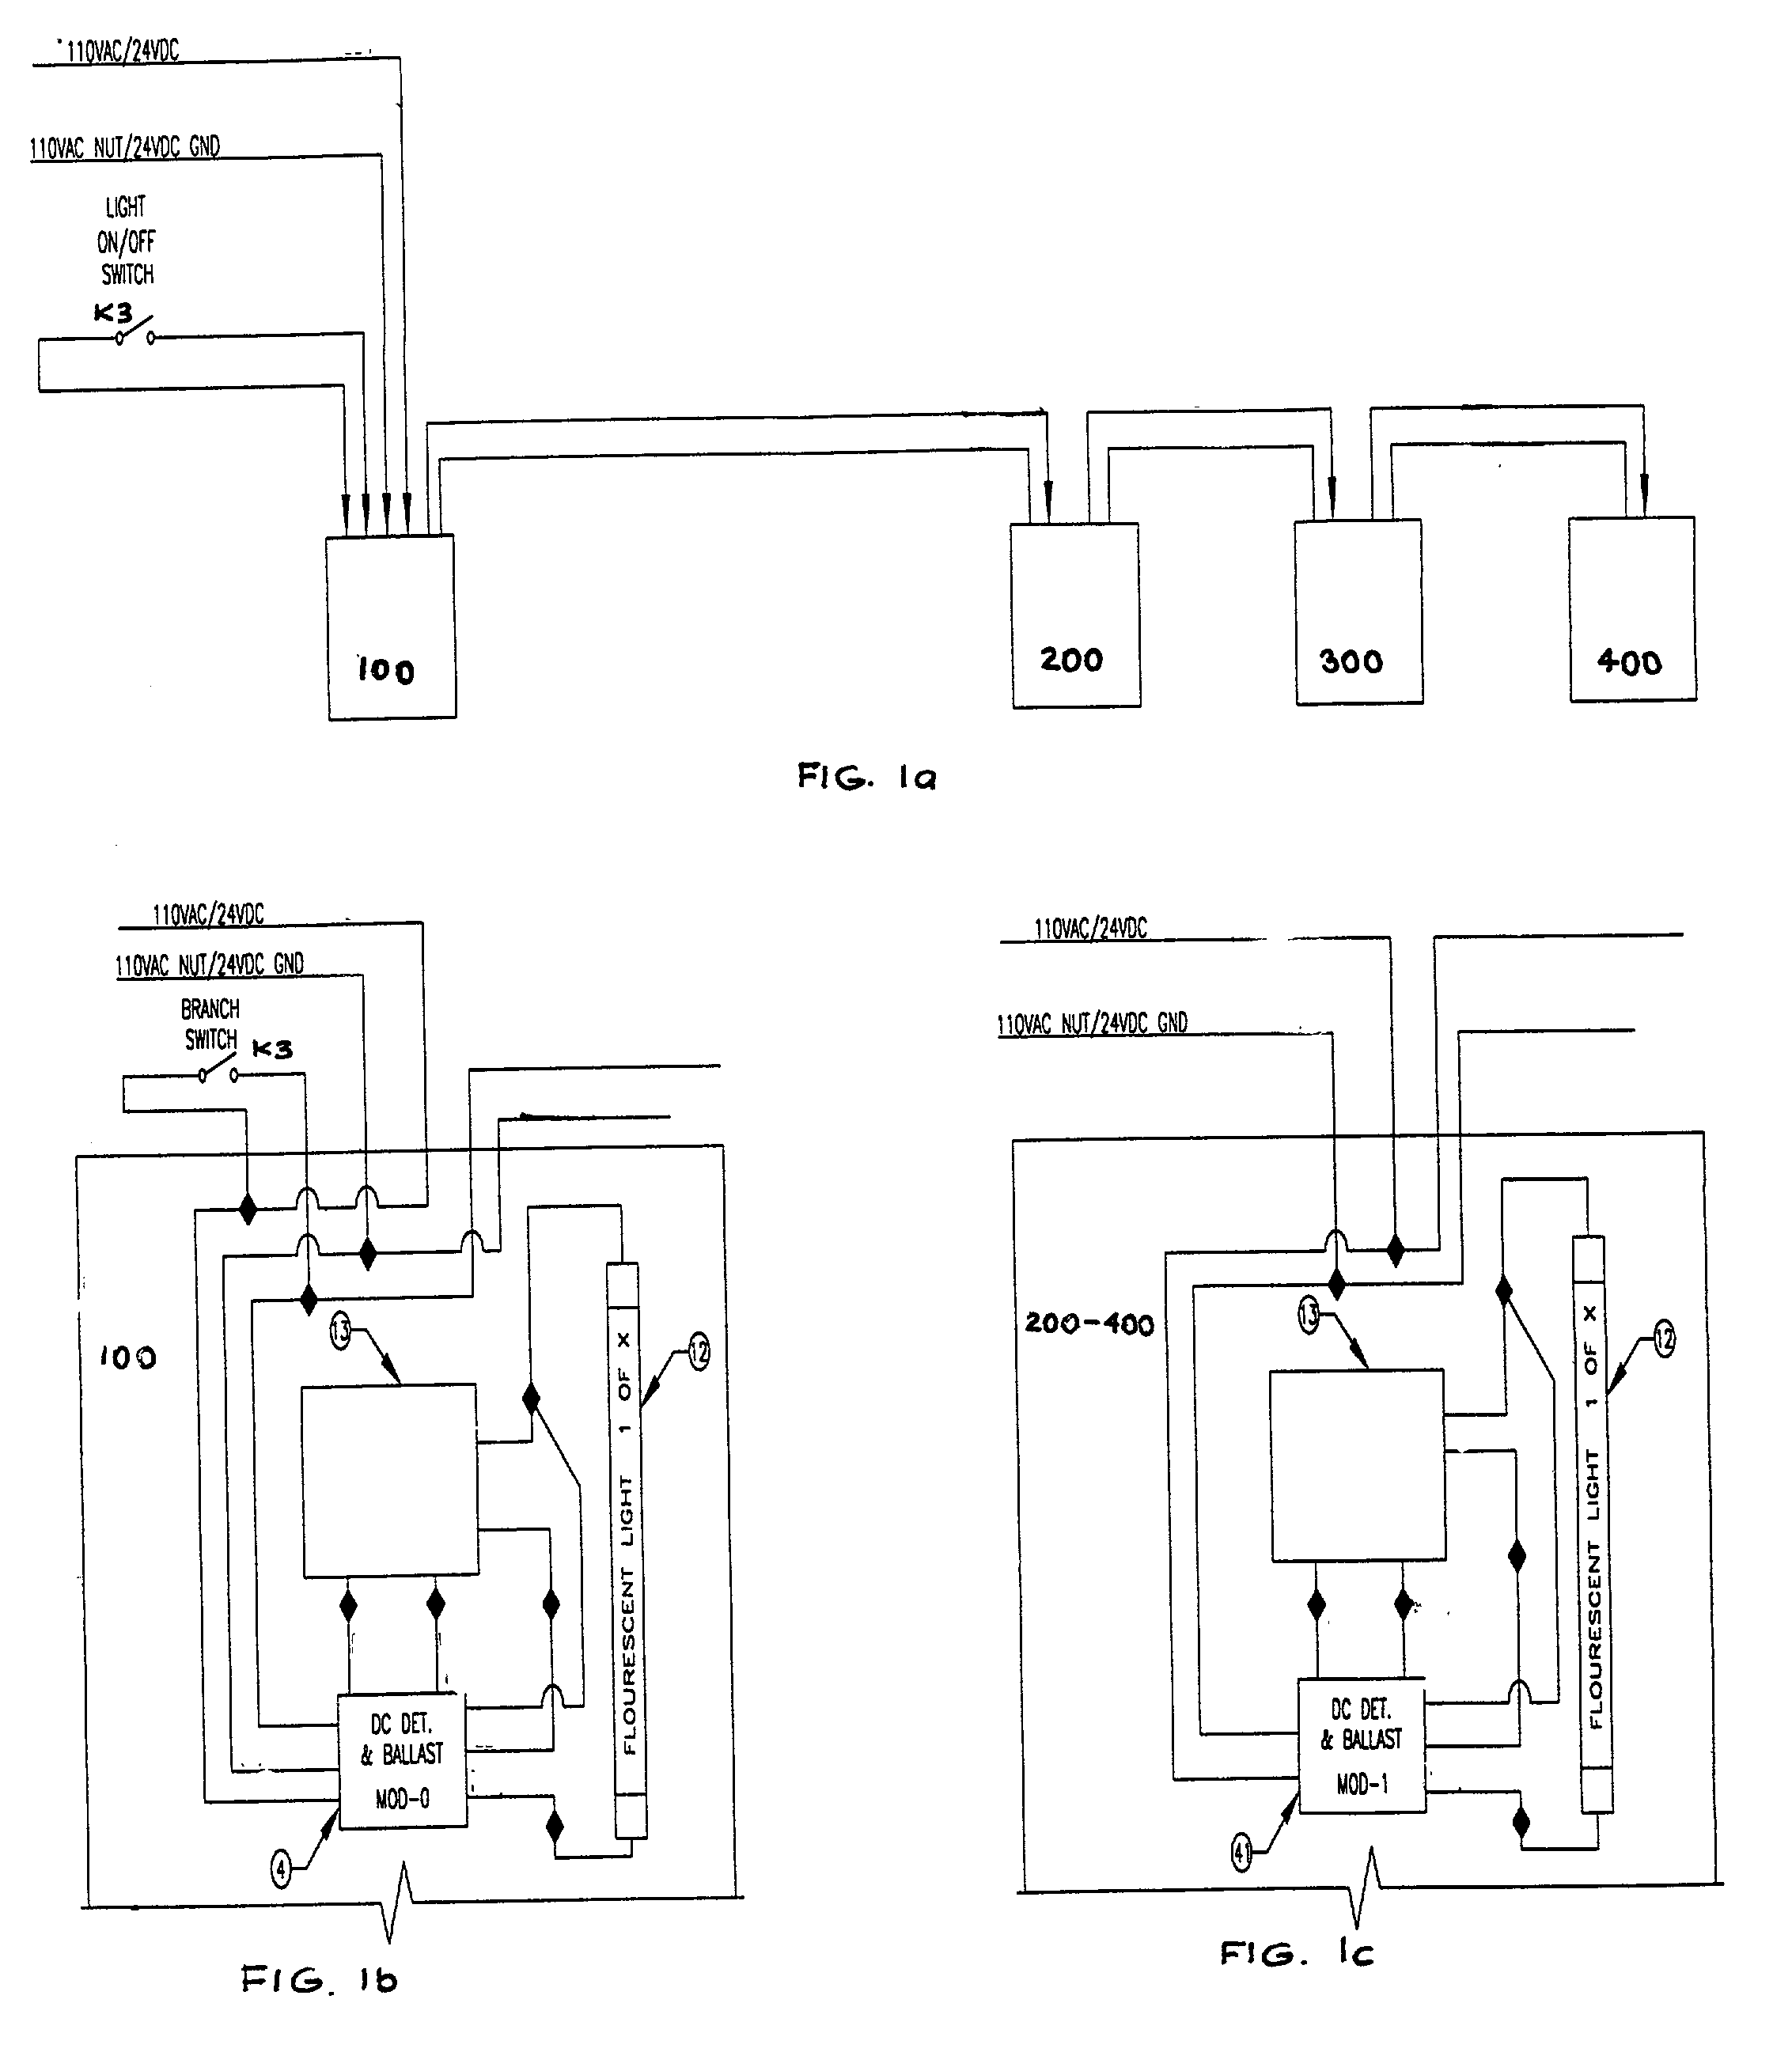 Emergency Ballast Wiring Diagram For Two Lighting Inverter 42 Patent Us20020047627 Central Battery System